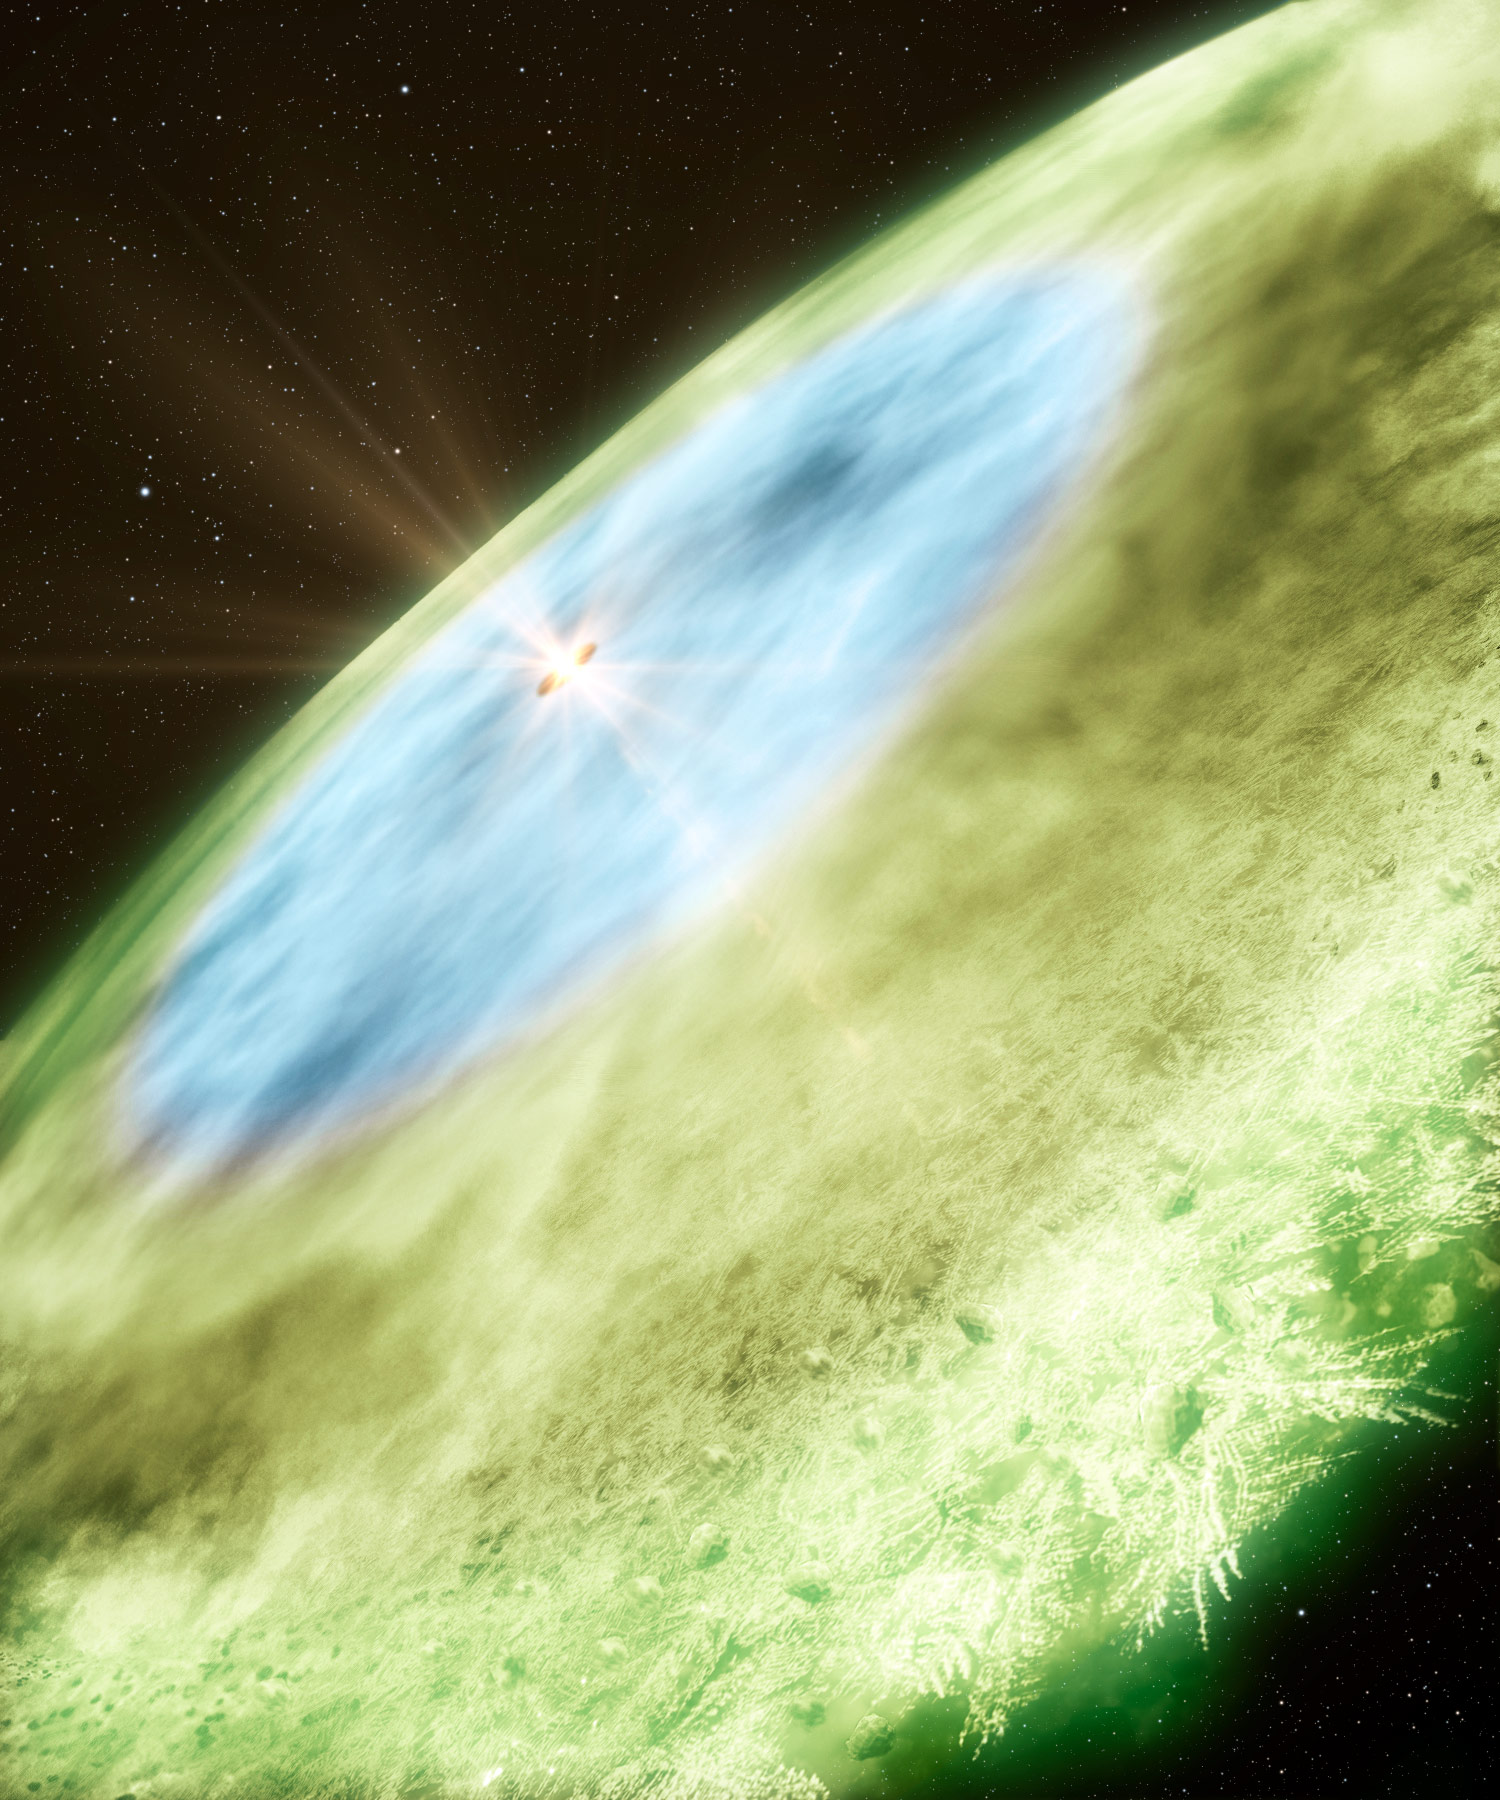 Credit: Bill Saxton and Alexandra Angelich, NRAO/AUI/NSF